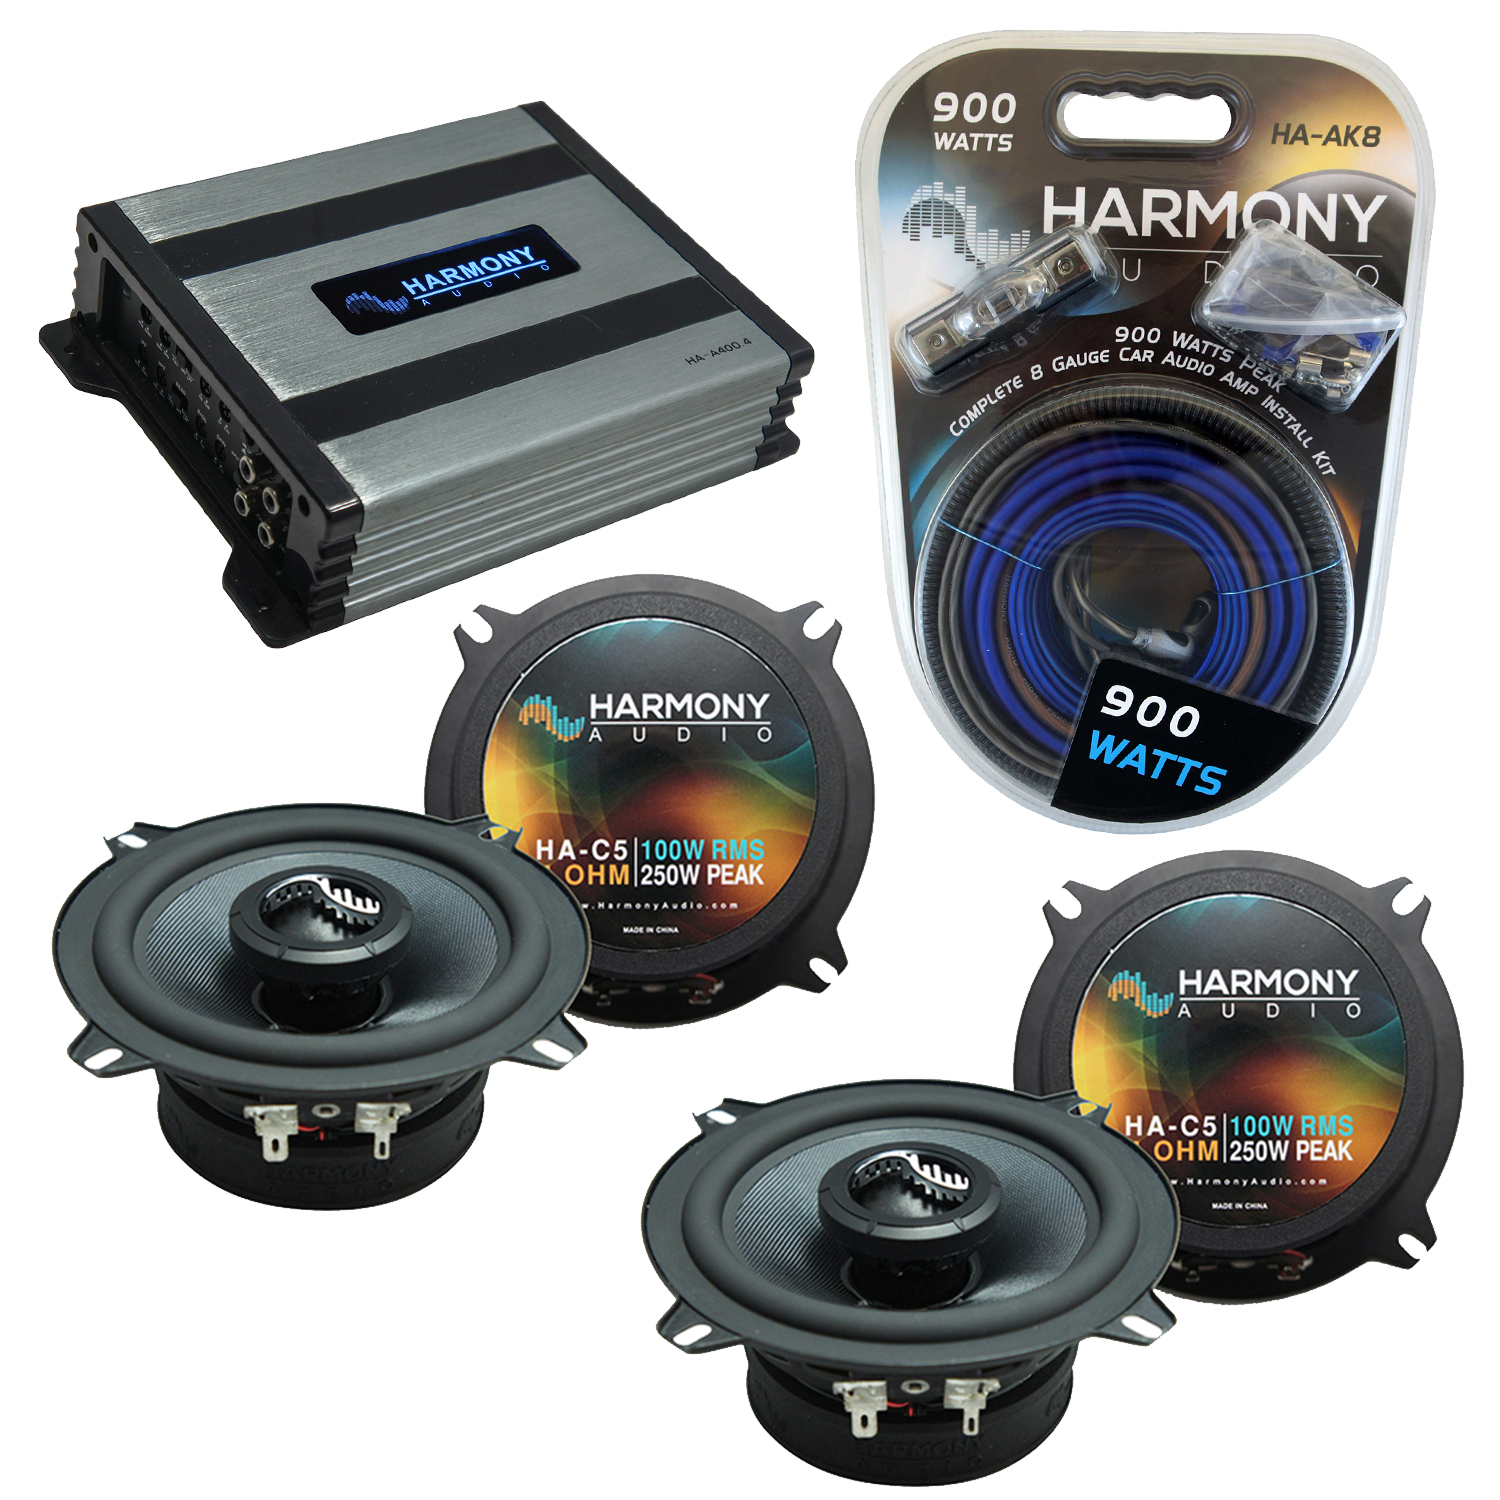 Compatible with Lexus IS 2006-2014 OEM Speakers Replacement Harmony (2) C5 & Harmony HA-A400.4